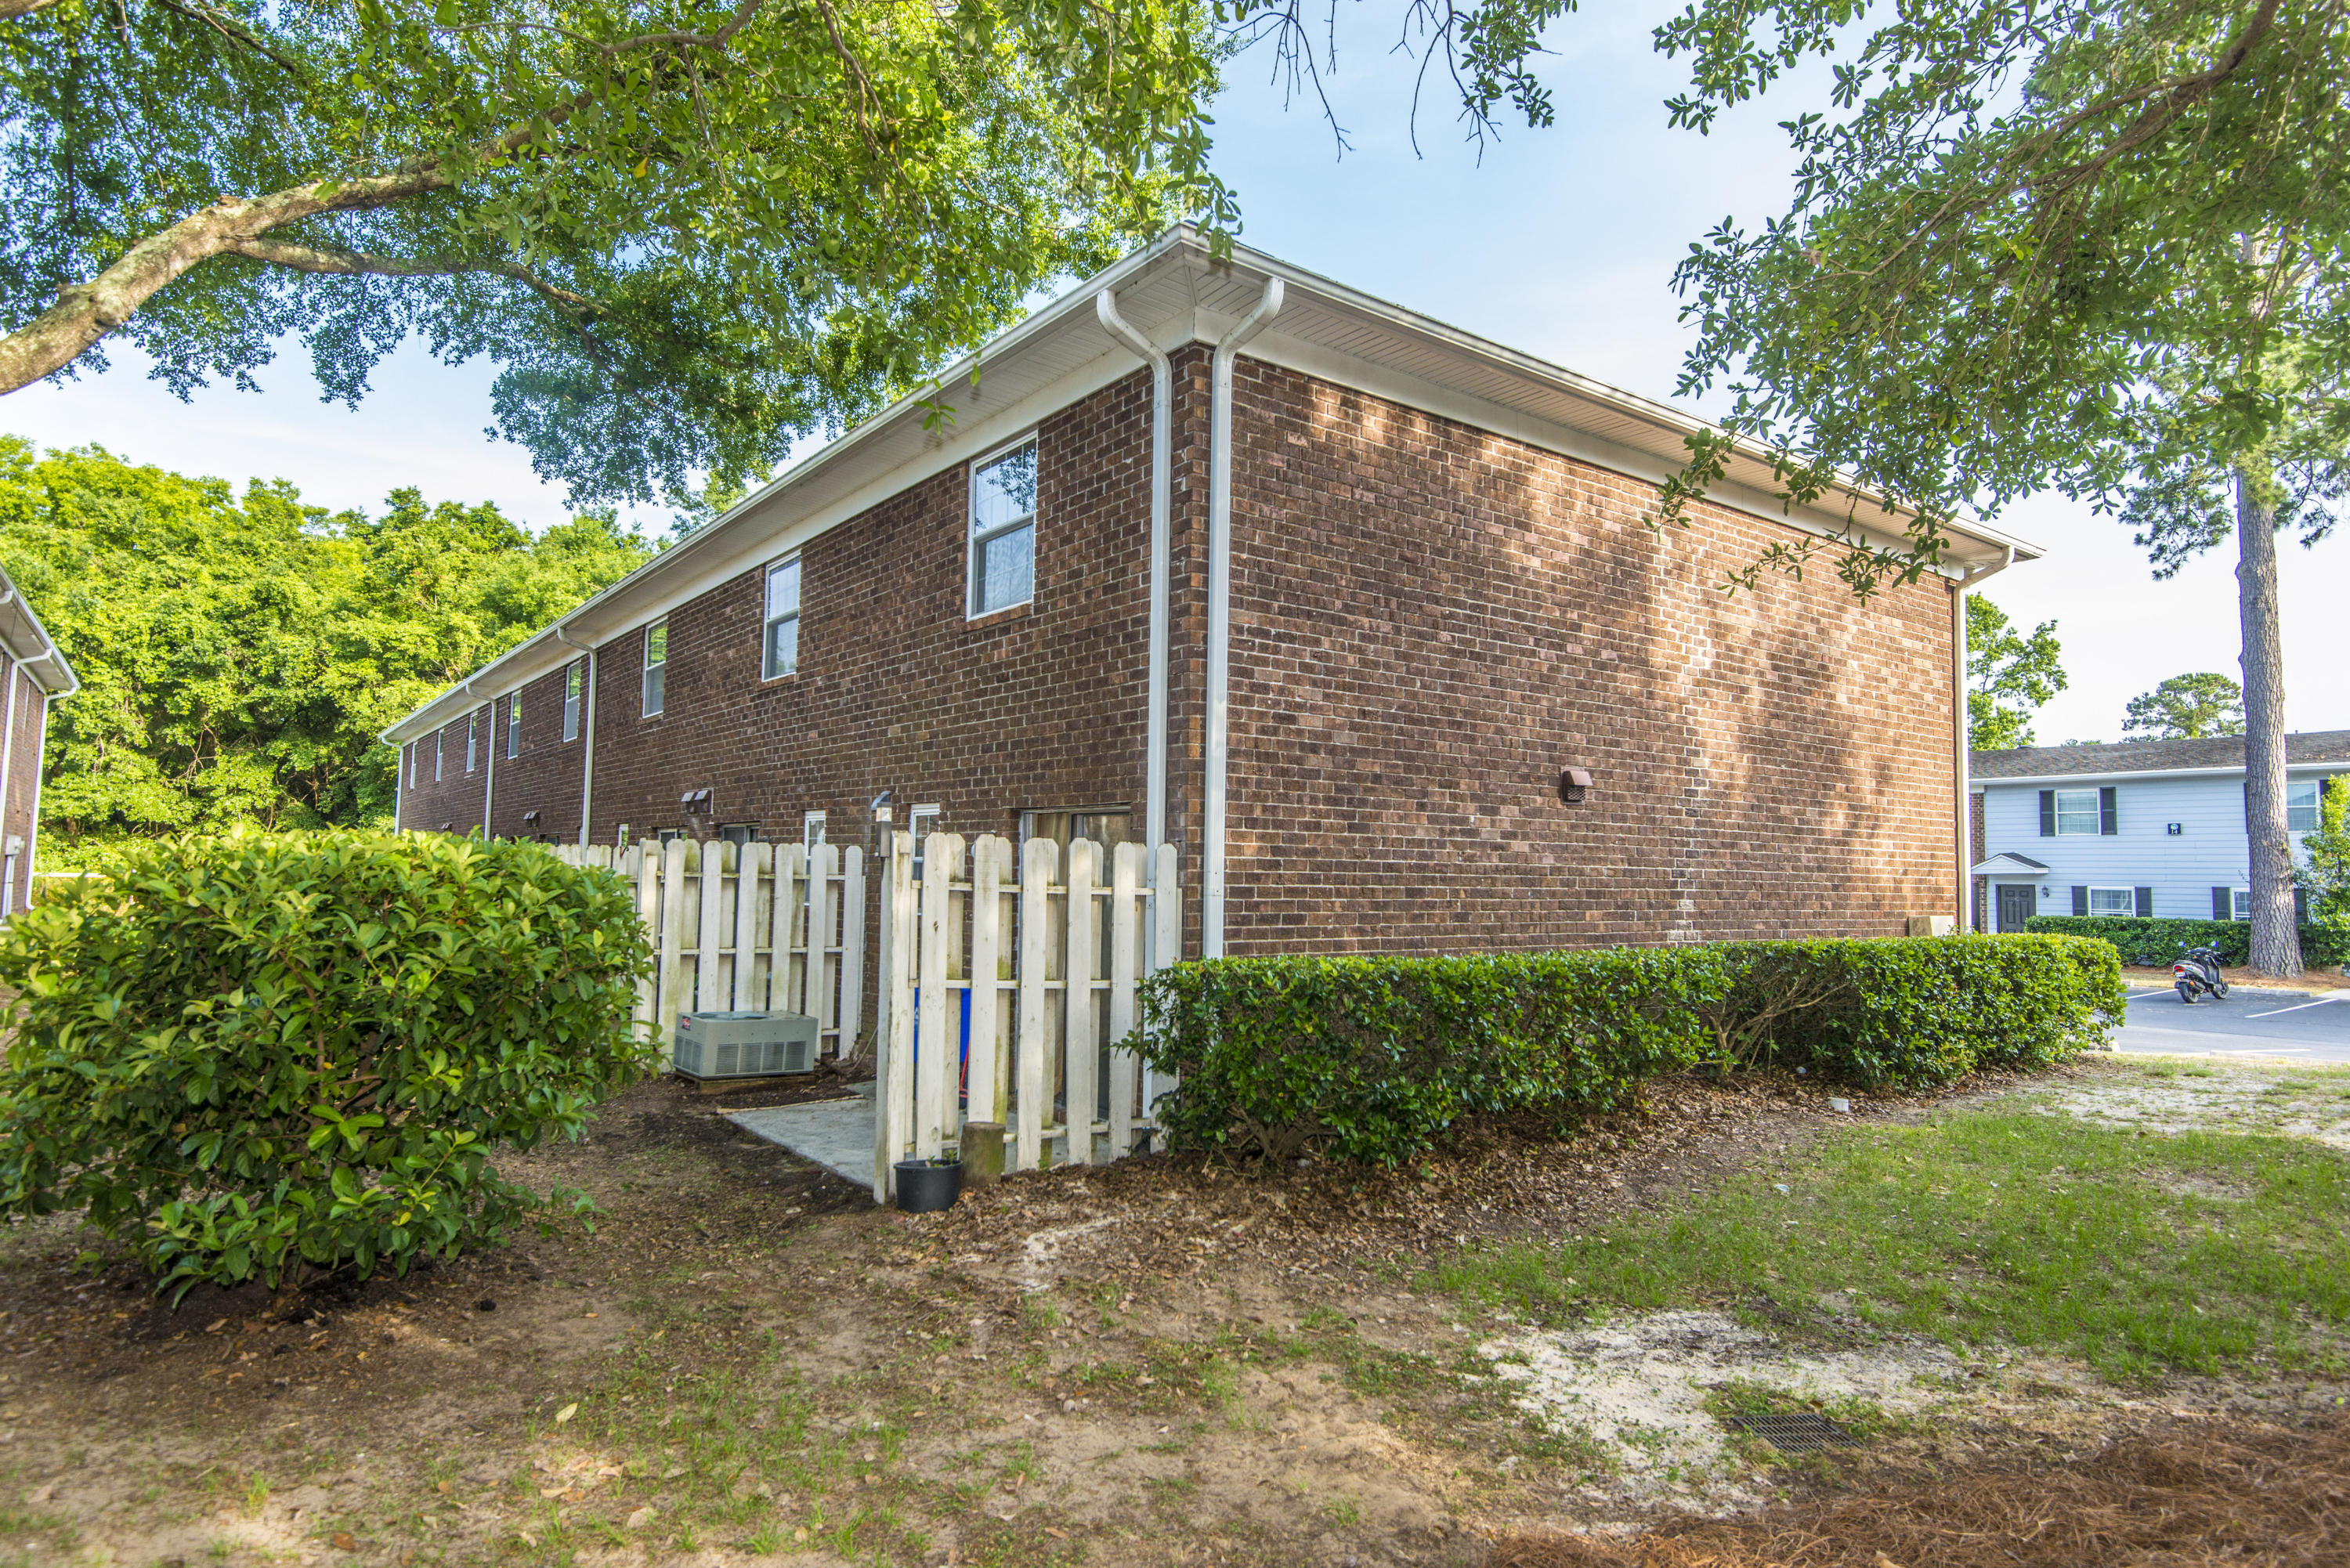 Rivers Point Row Homes For Sale - 21 Rivers Point Row, Charleston, SC - 14